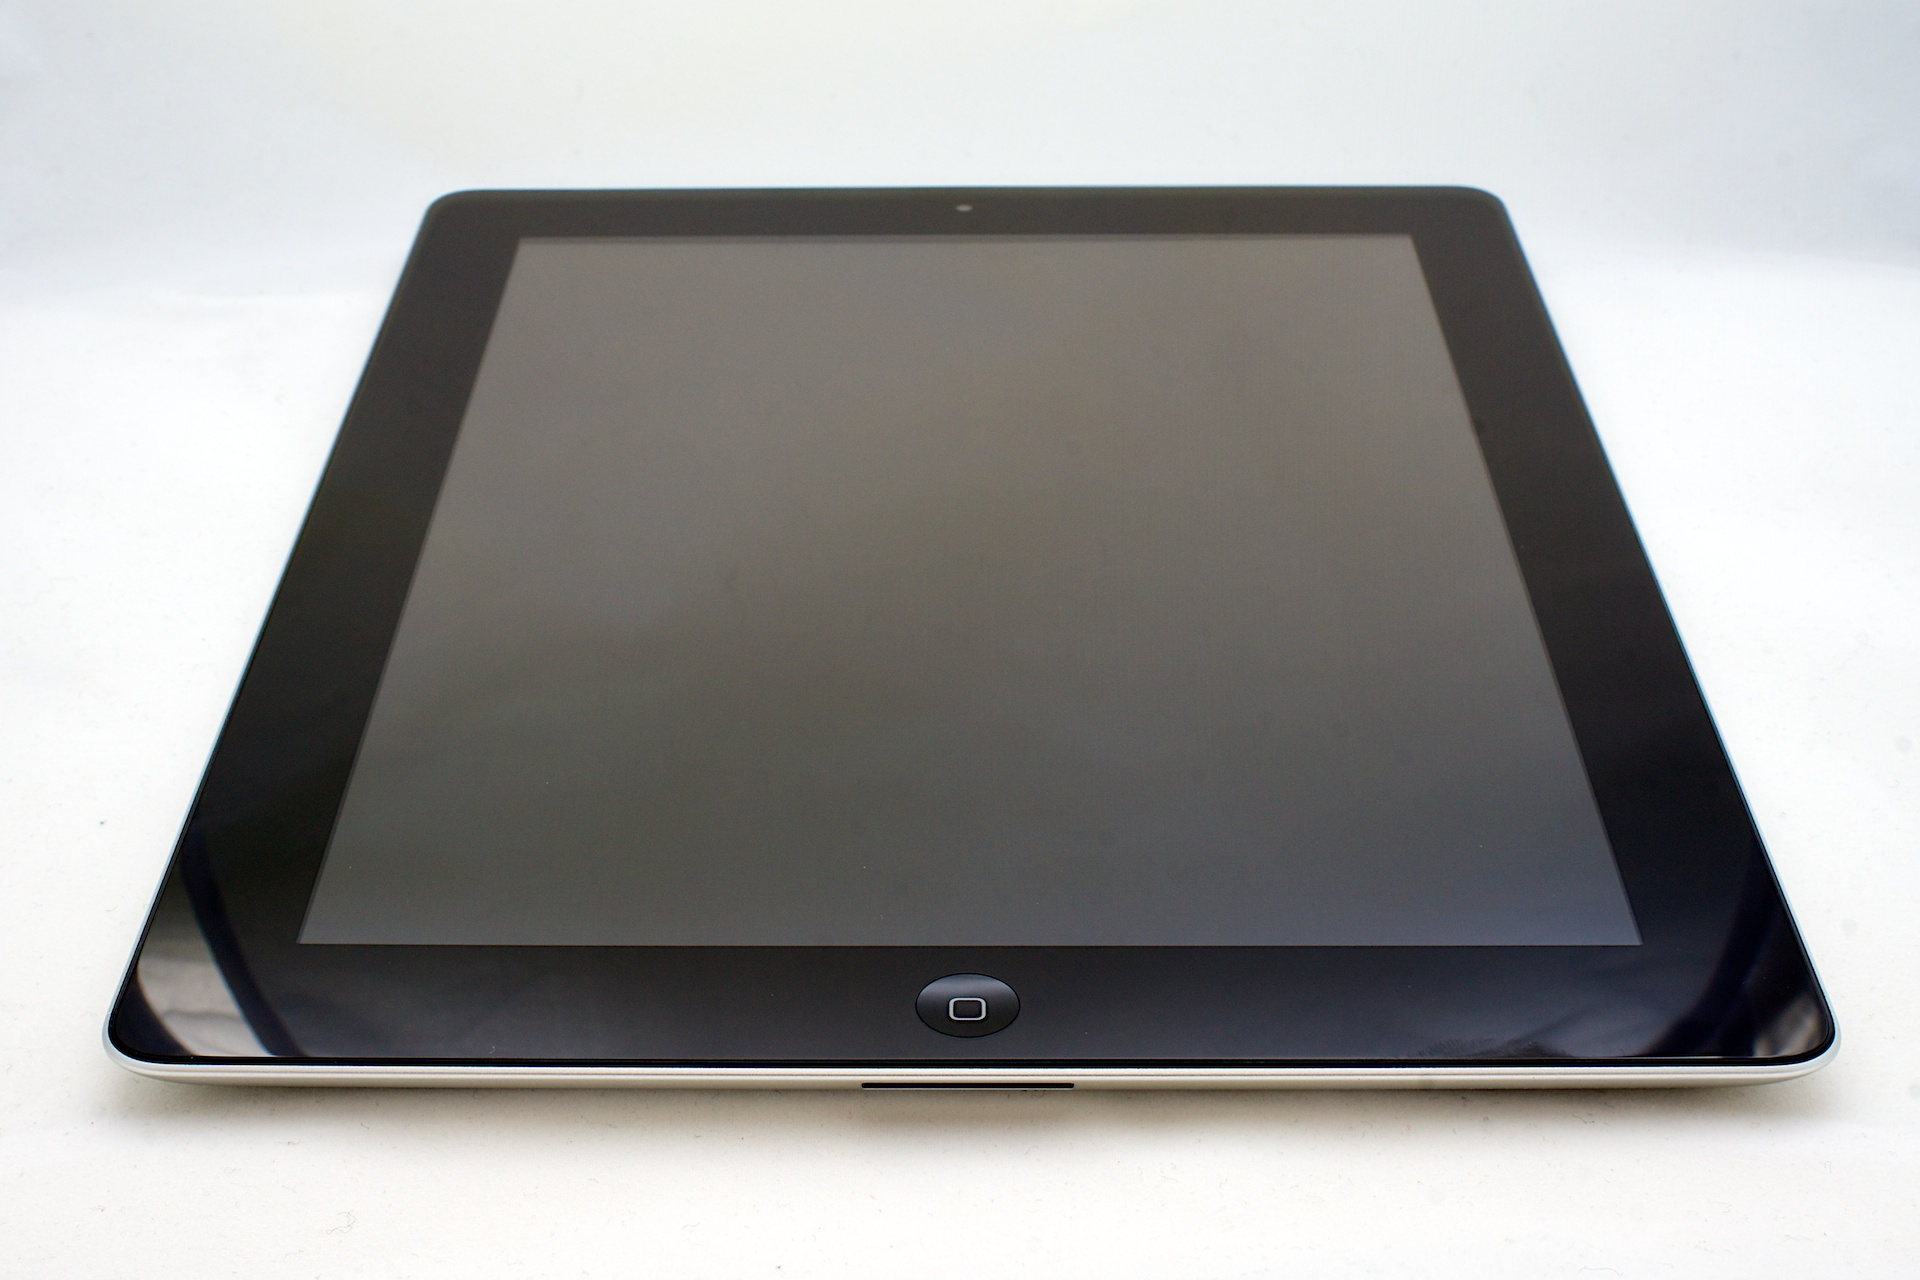 Picture of an iPad lying on a white surface.